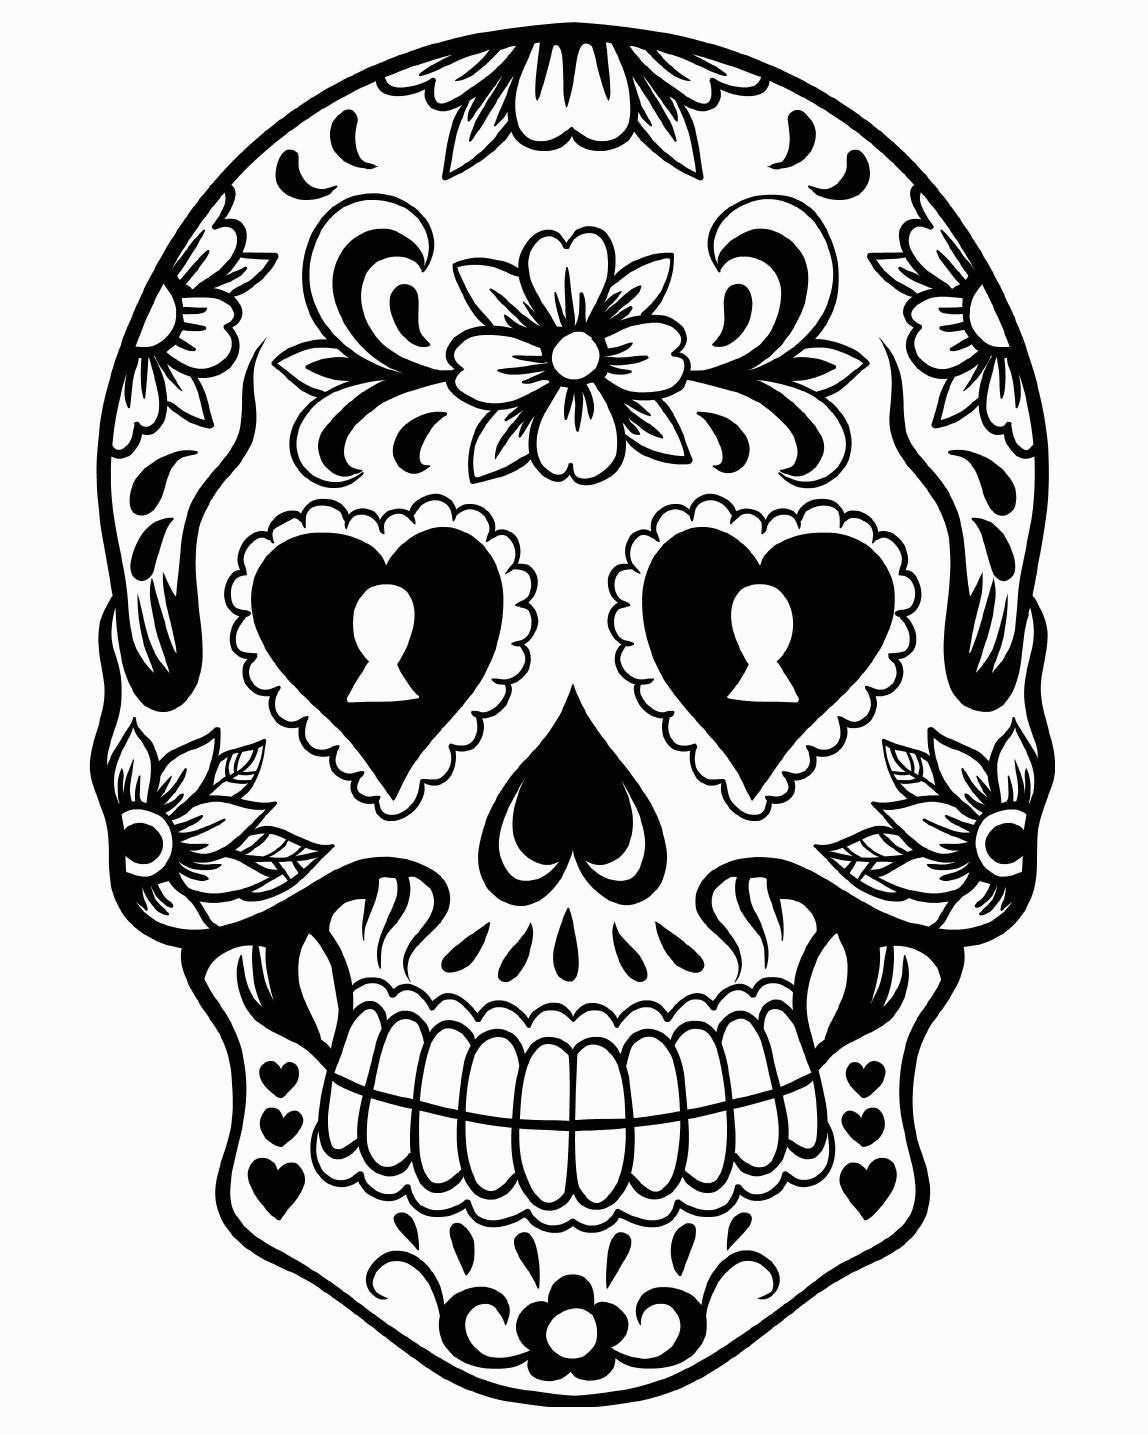 Day Of The Dead Coloring Pages Free Printable Day Of The Dead - Free Printable Day Of The Dead Coloring Pages